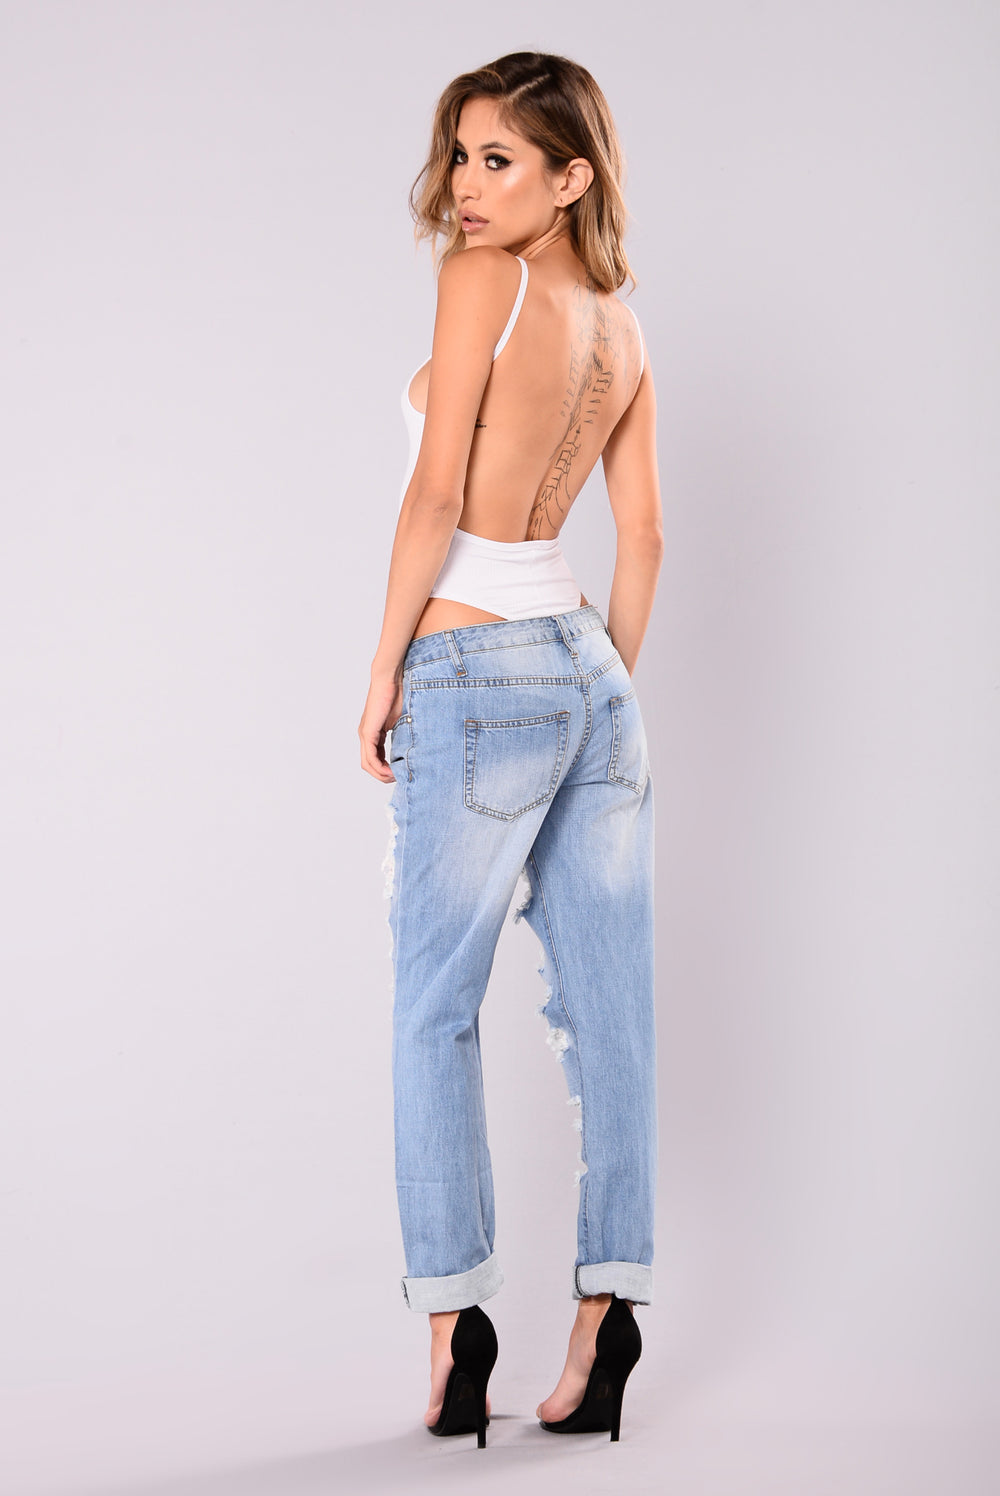 Unforgettable High Waisted Distressed Jeans - Light